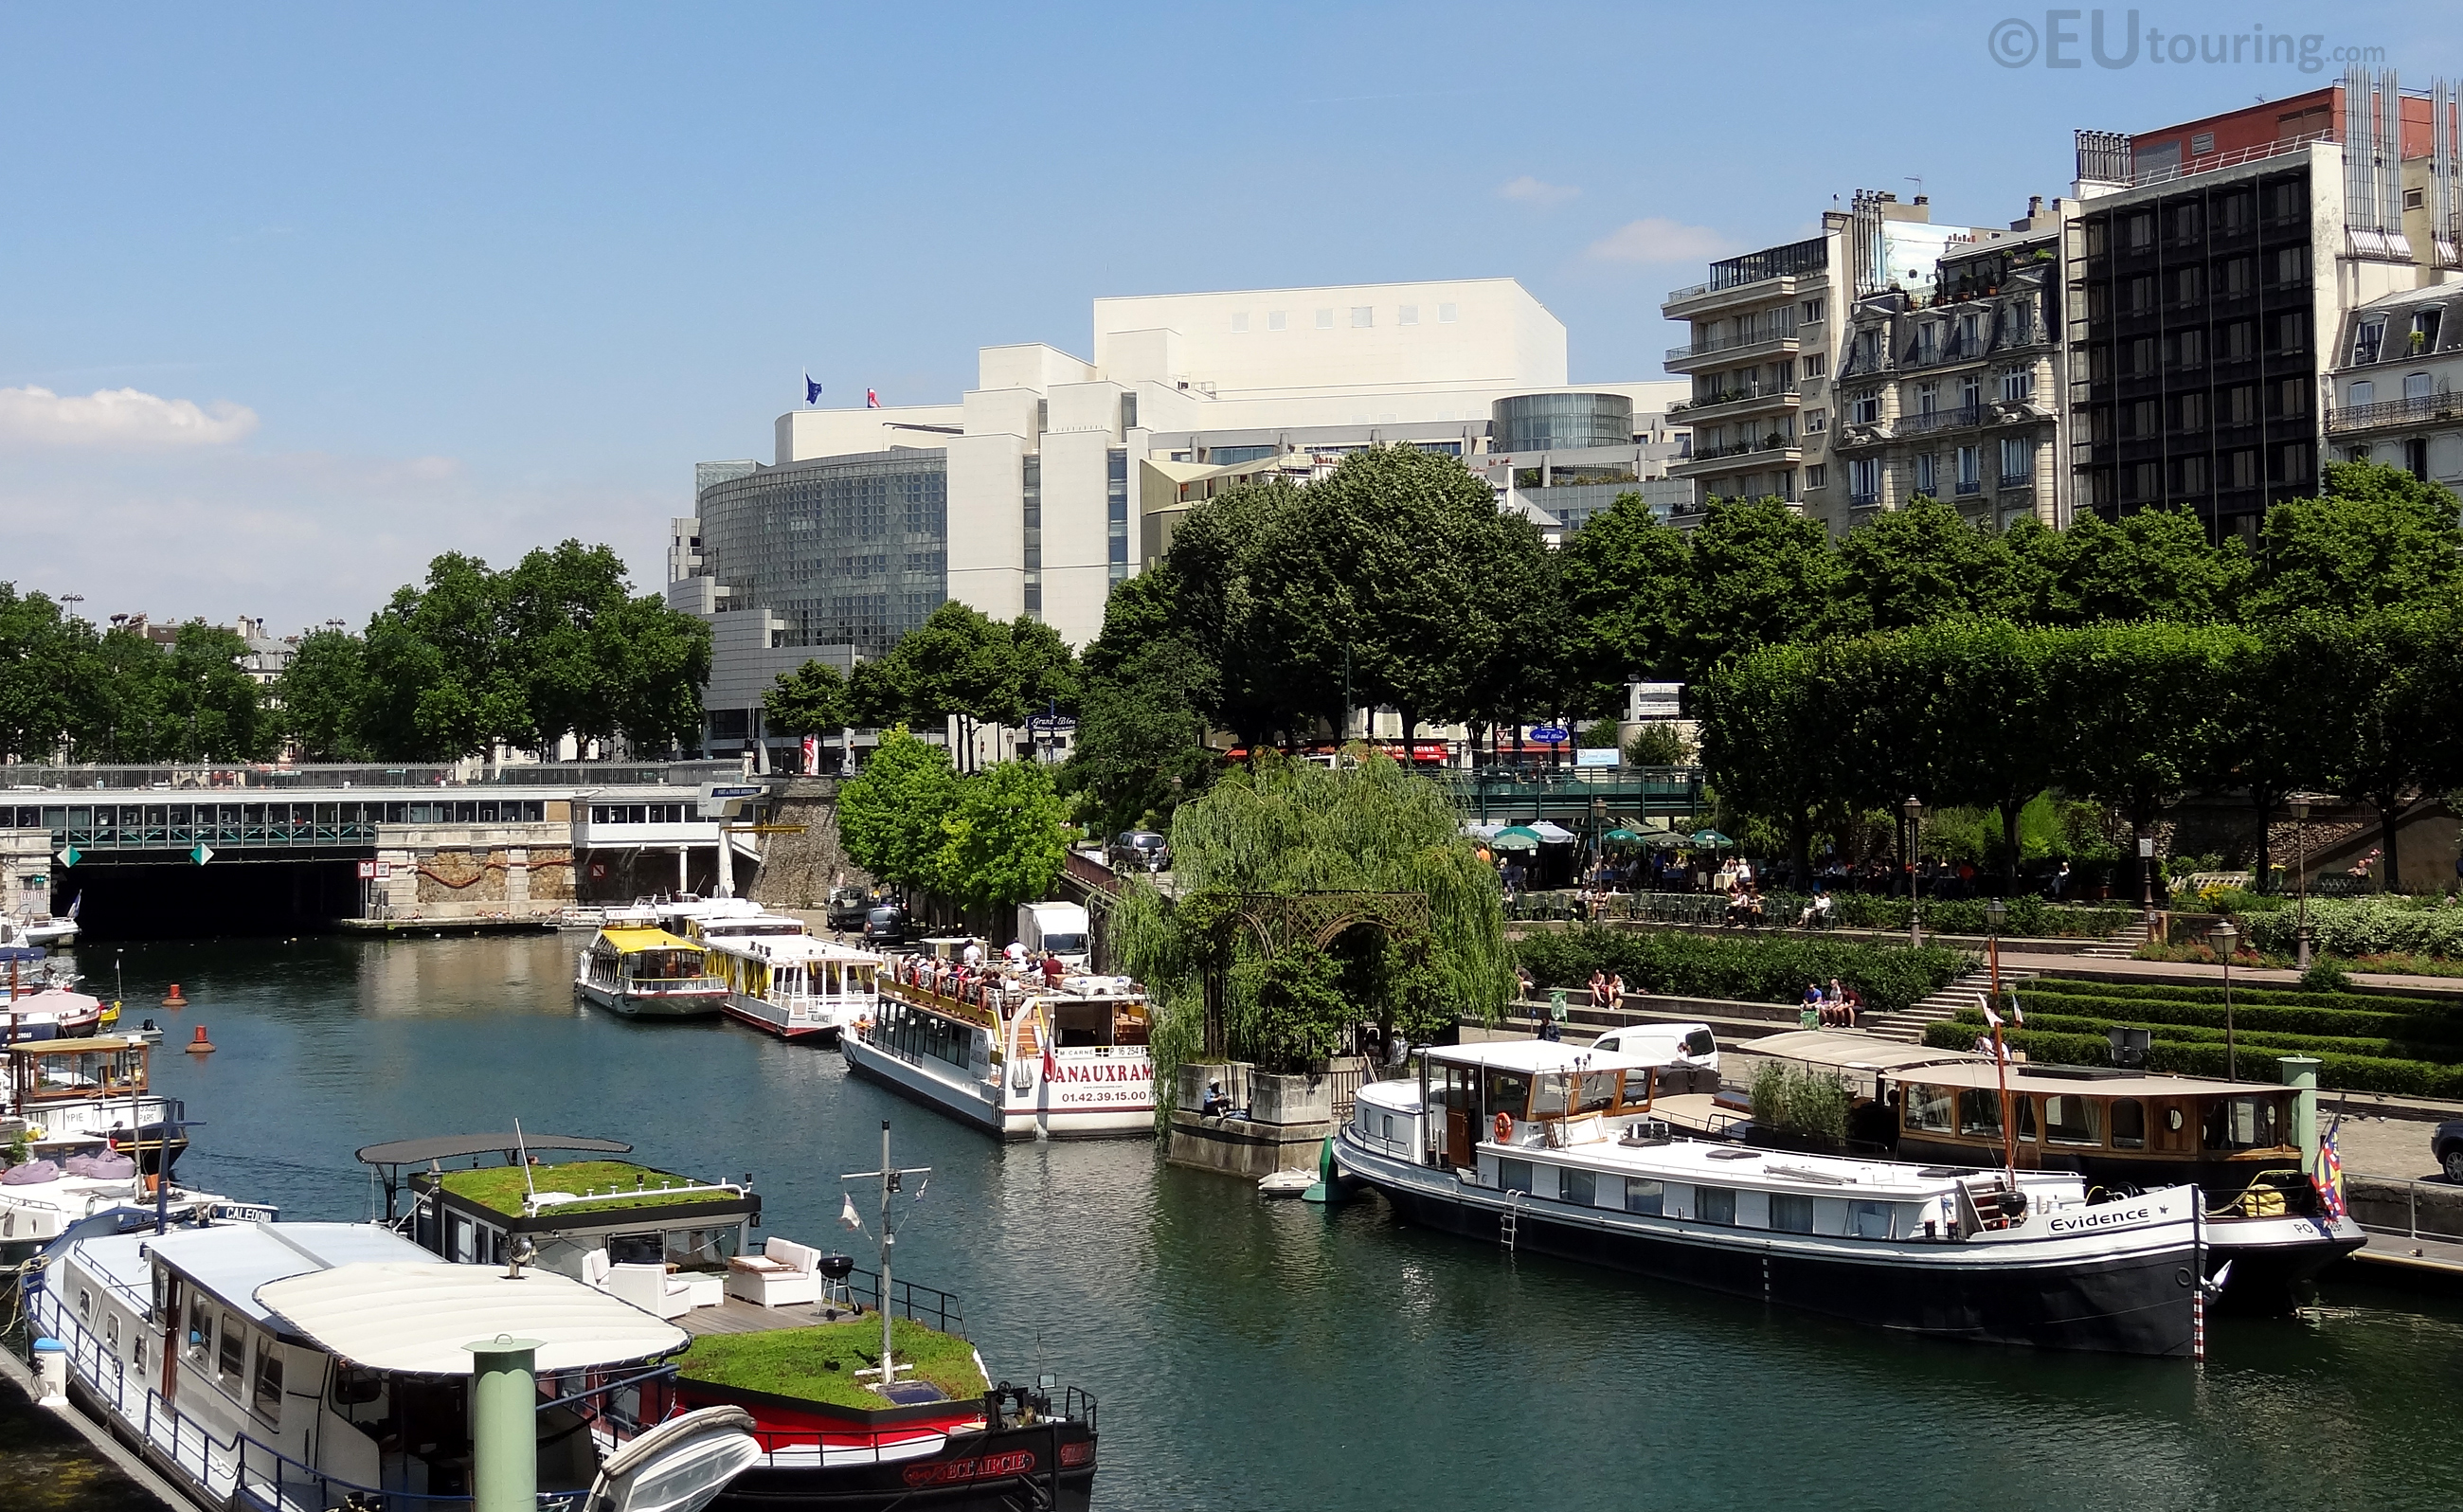 Boats and buildings at Canal Saint Martin